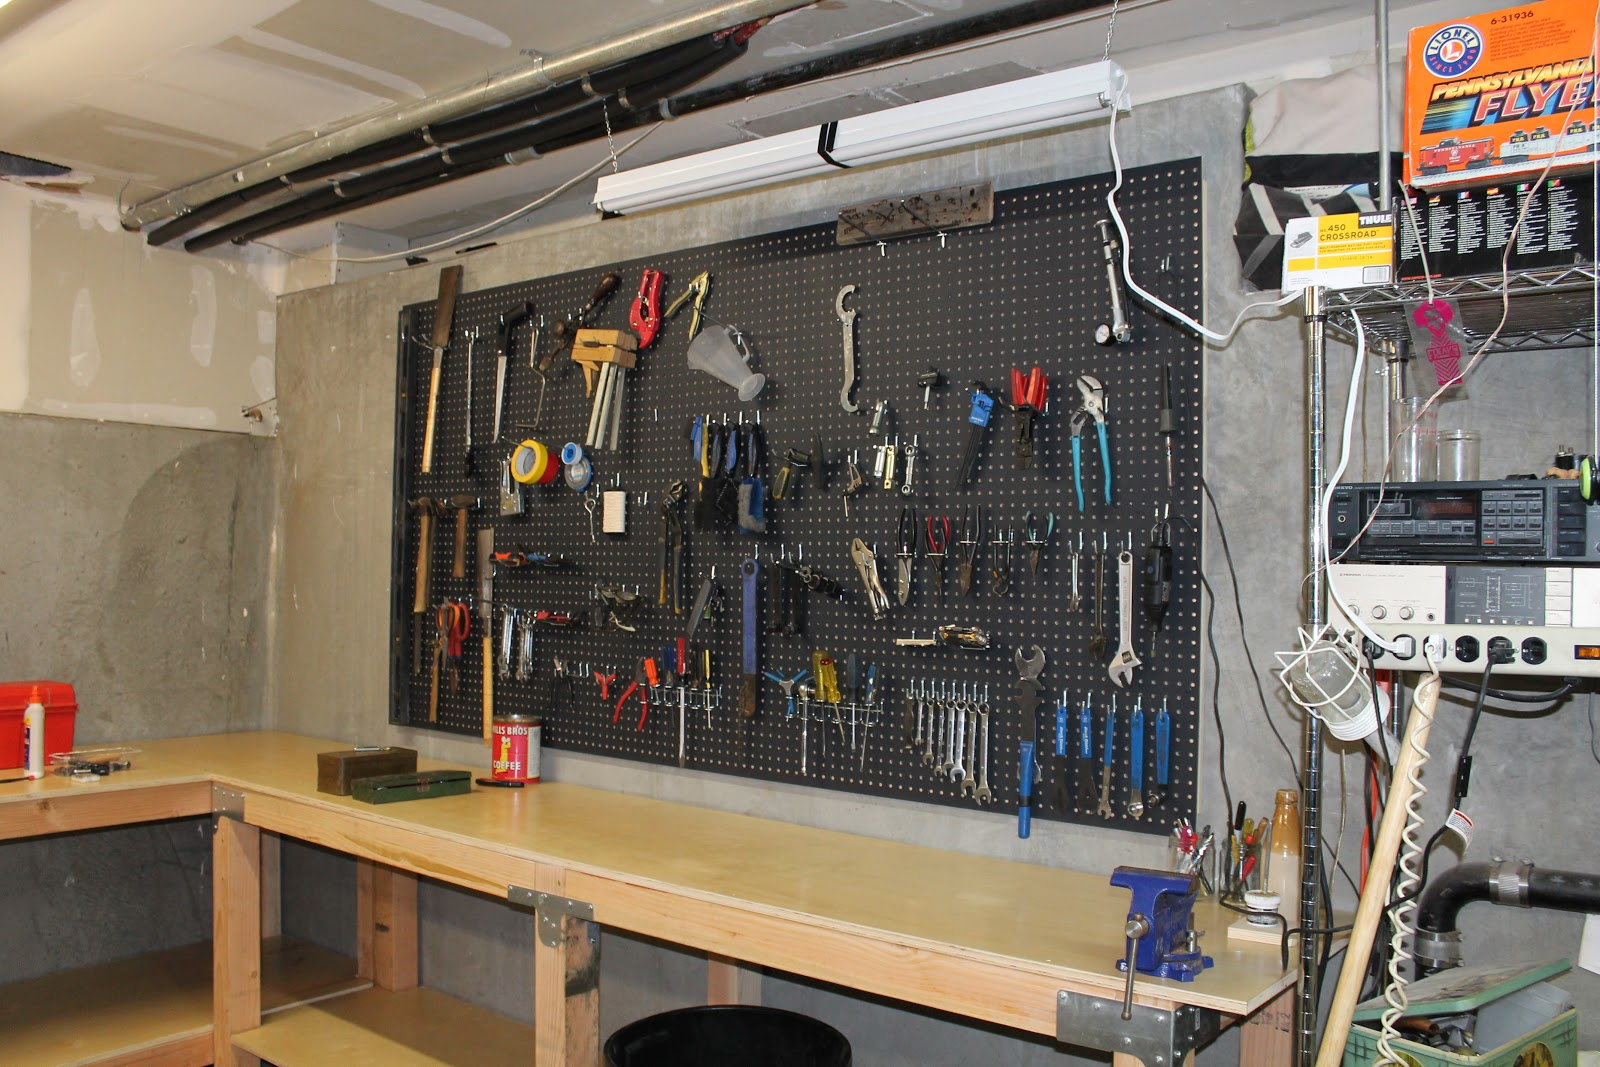 creativity organizer make storage a rhpinterestcom attachment diy to with garage wallthe public the board wallrhthecreativityexchangecom pegboard organizing peg how tool